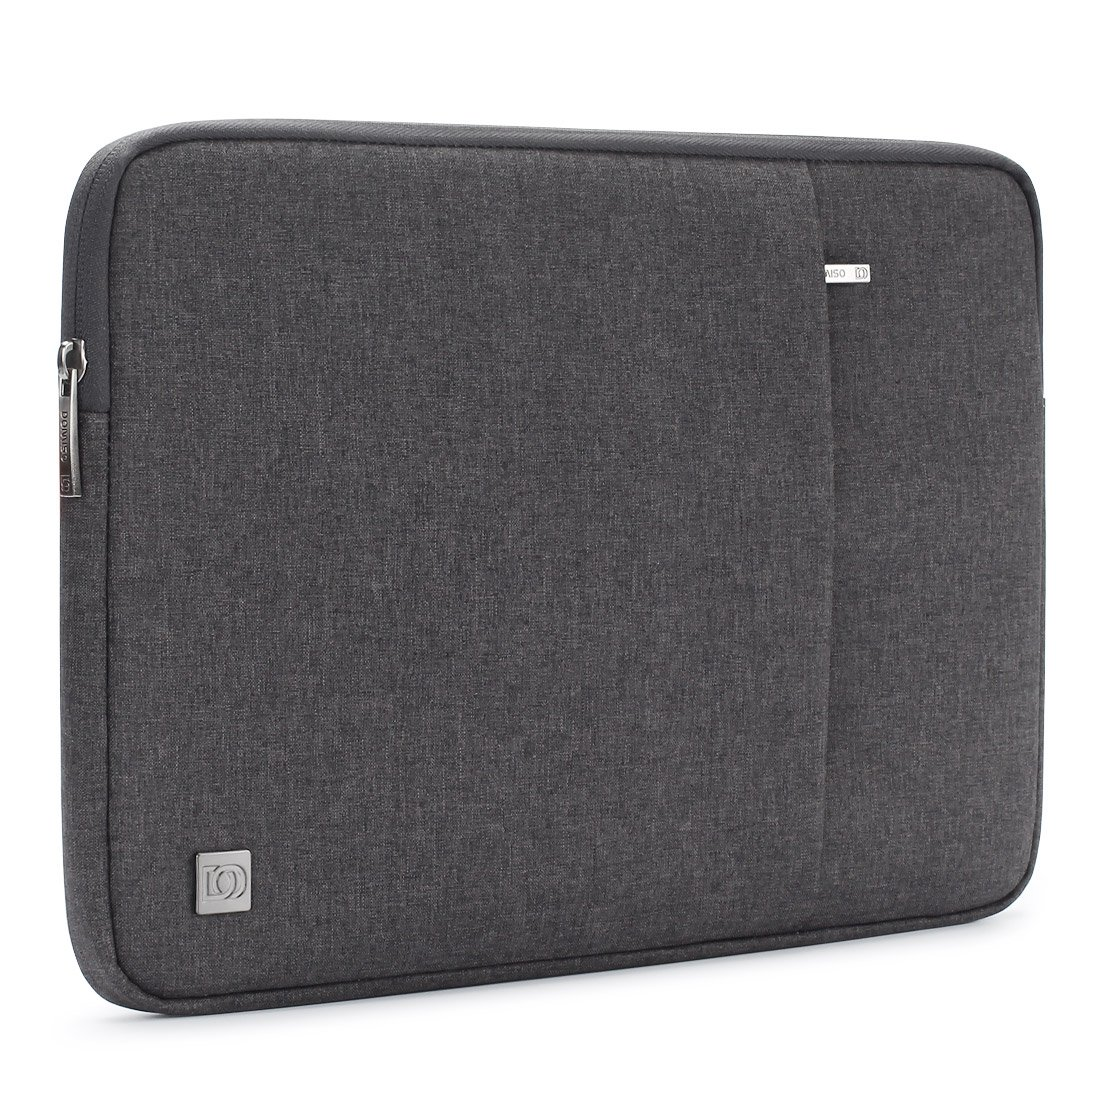 DOMISO 15.6 Inch Laptop Sleeve Case Water-Resistant Notebook Tablet Protective Skin Cover Briefcase Carrying Bag Pouch for 15.6'' Computers / Lenovo / Acer / ASUS / HP / Dell, Dark Grey